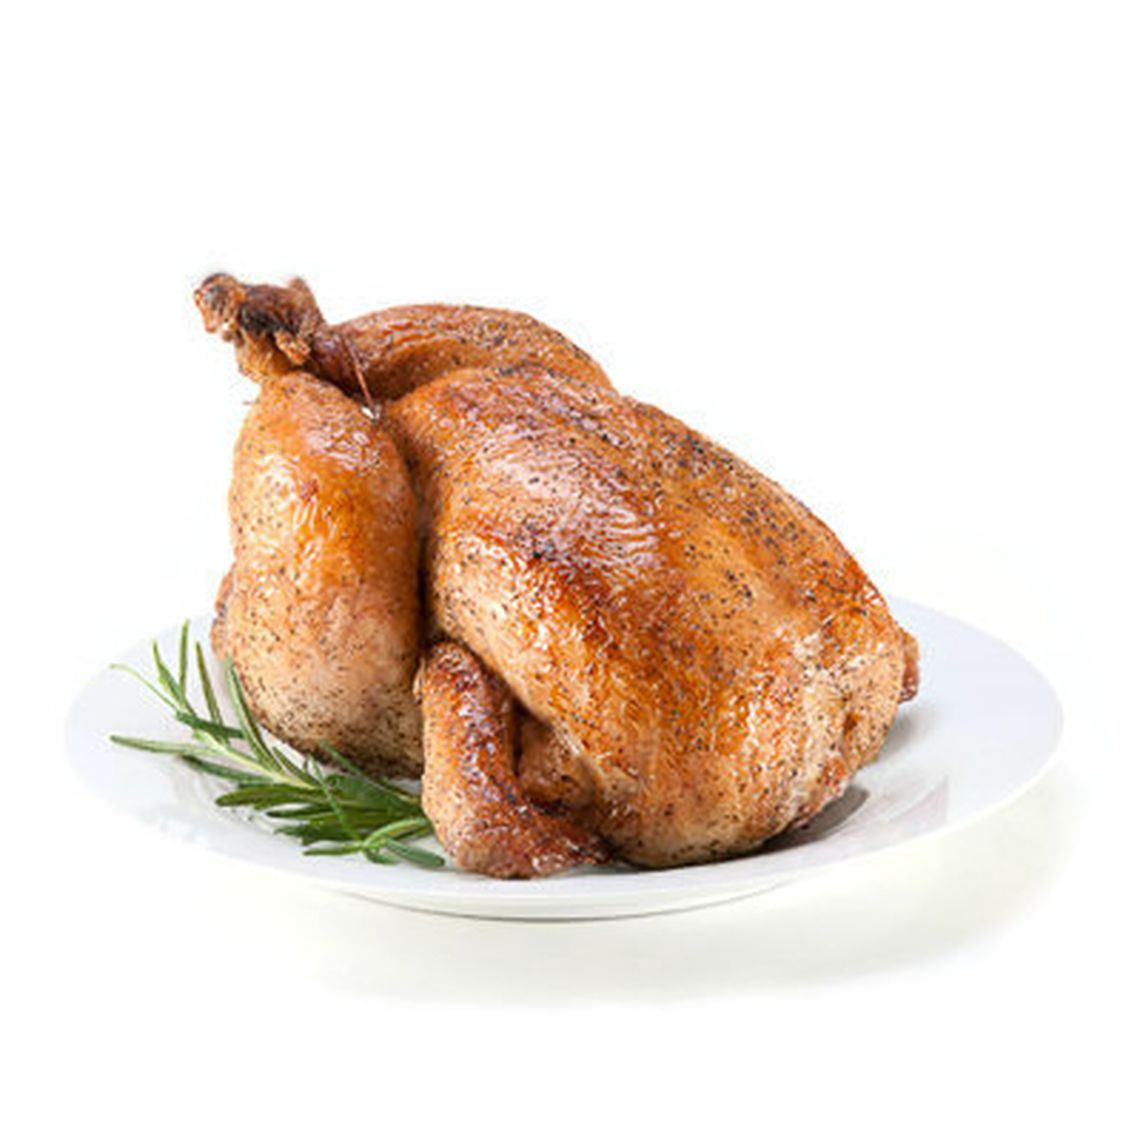 Where to find the best rotisserie chicken in Tampa Bay  An